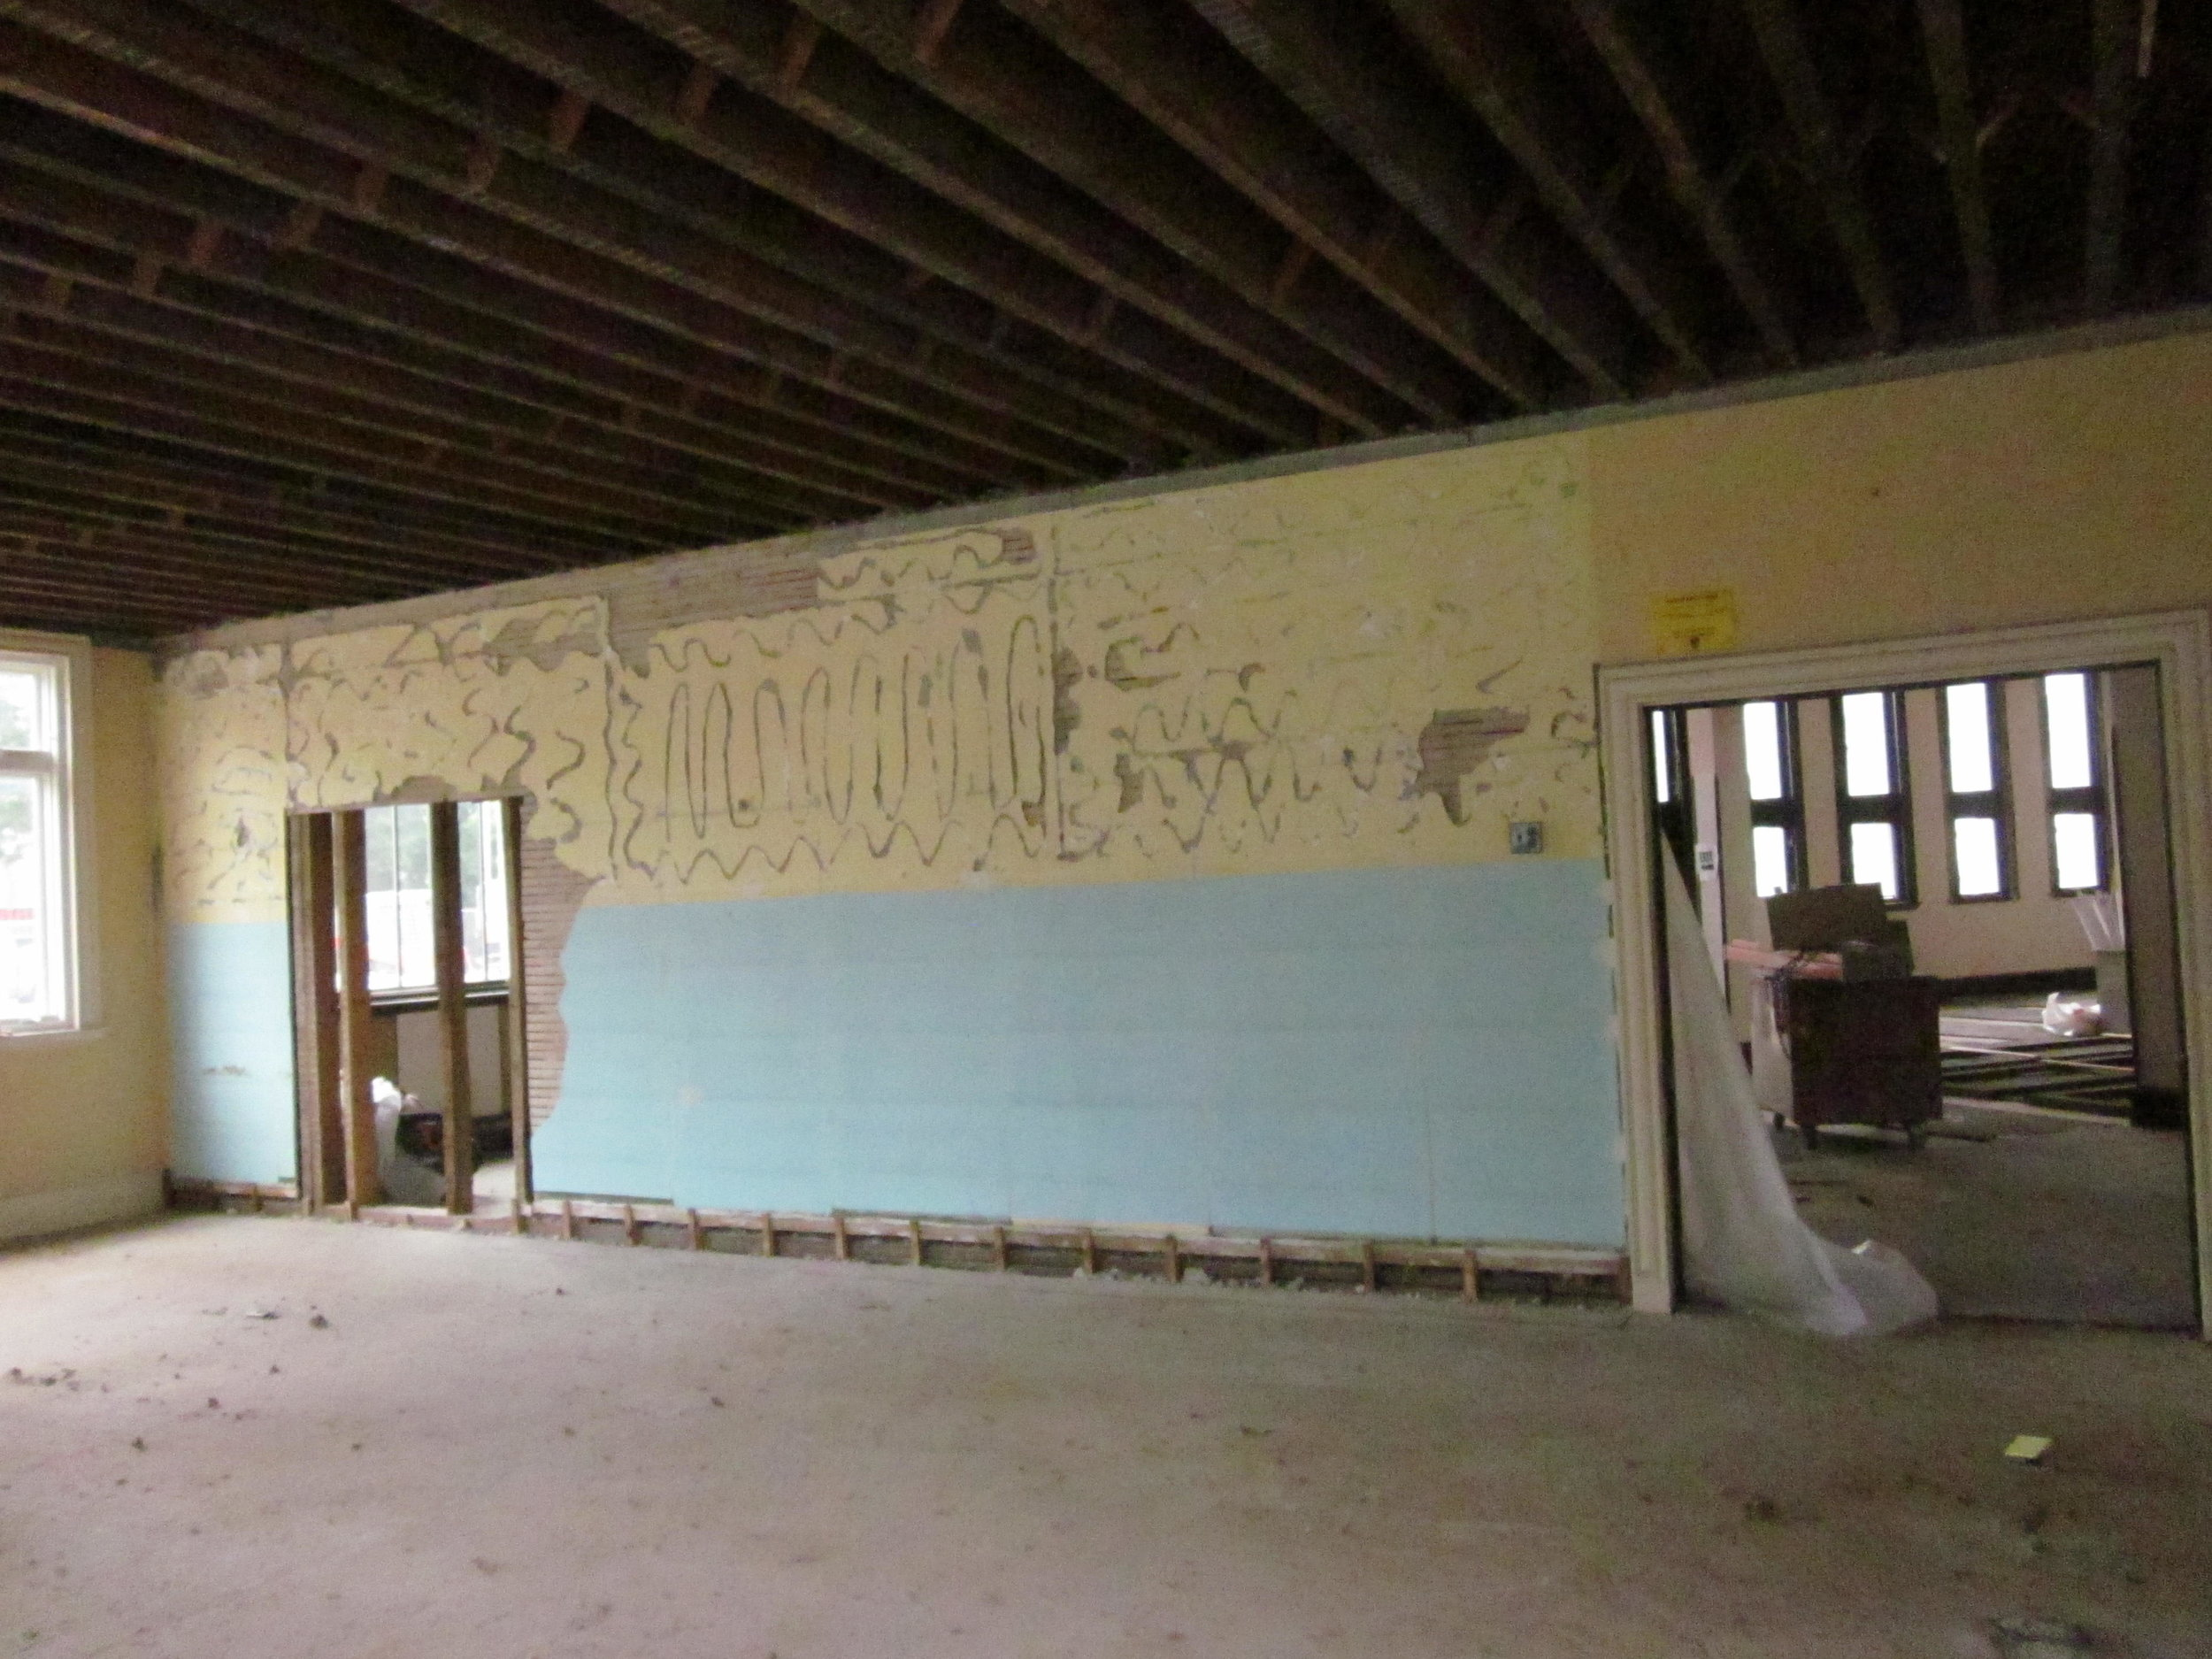 New doorway (left) from former children's room, main level north wing